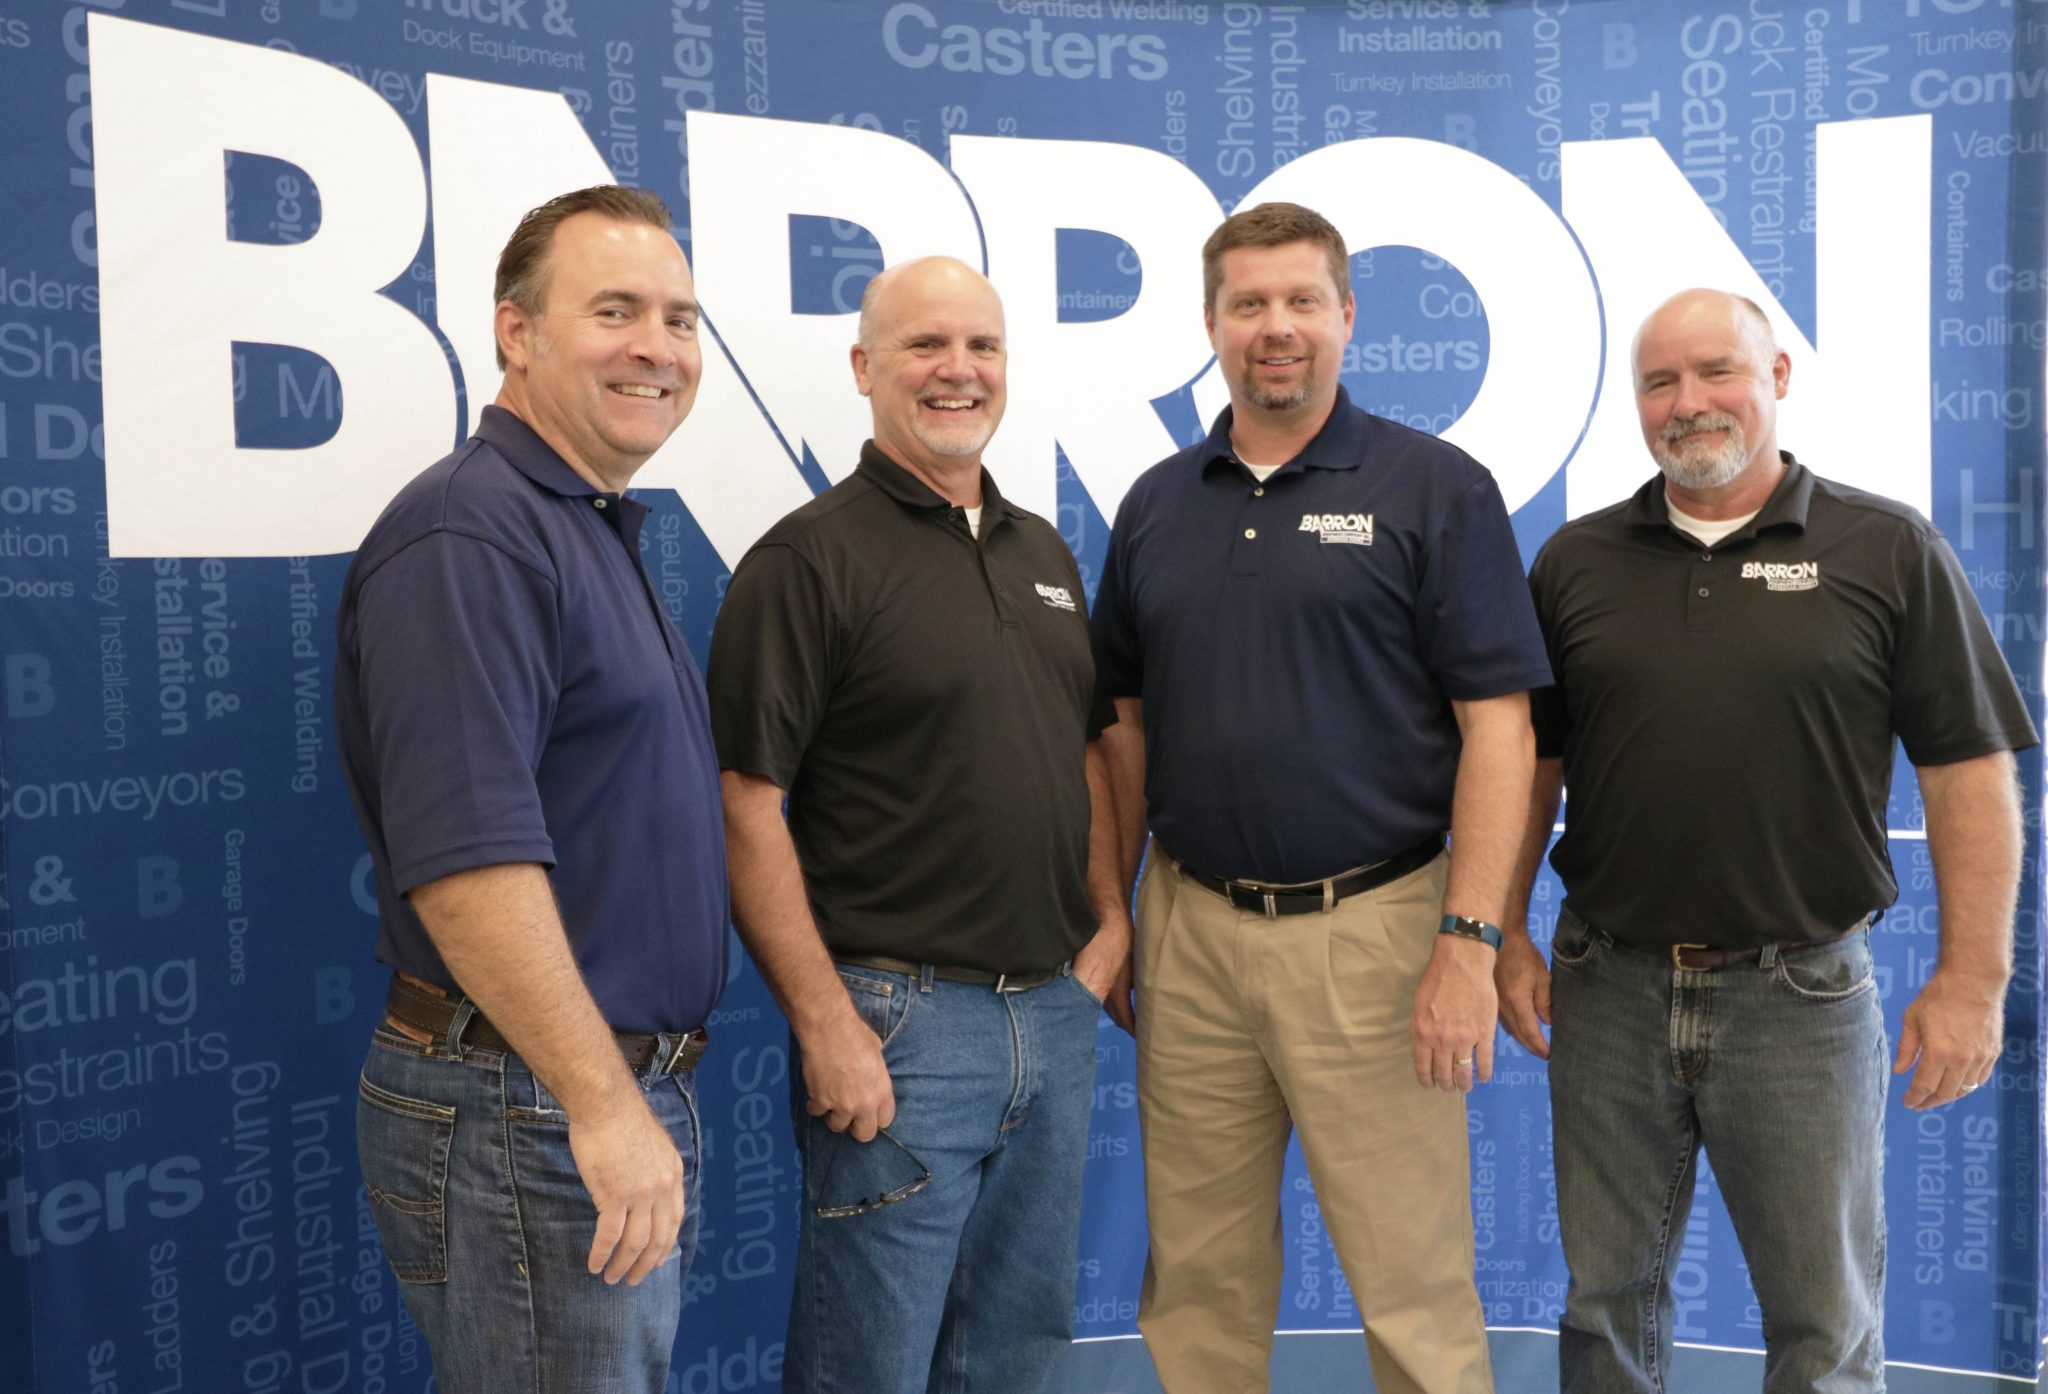 Barron Team at a trade show